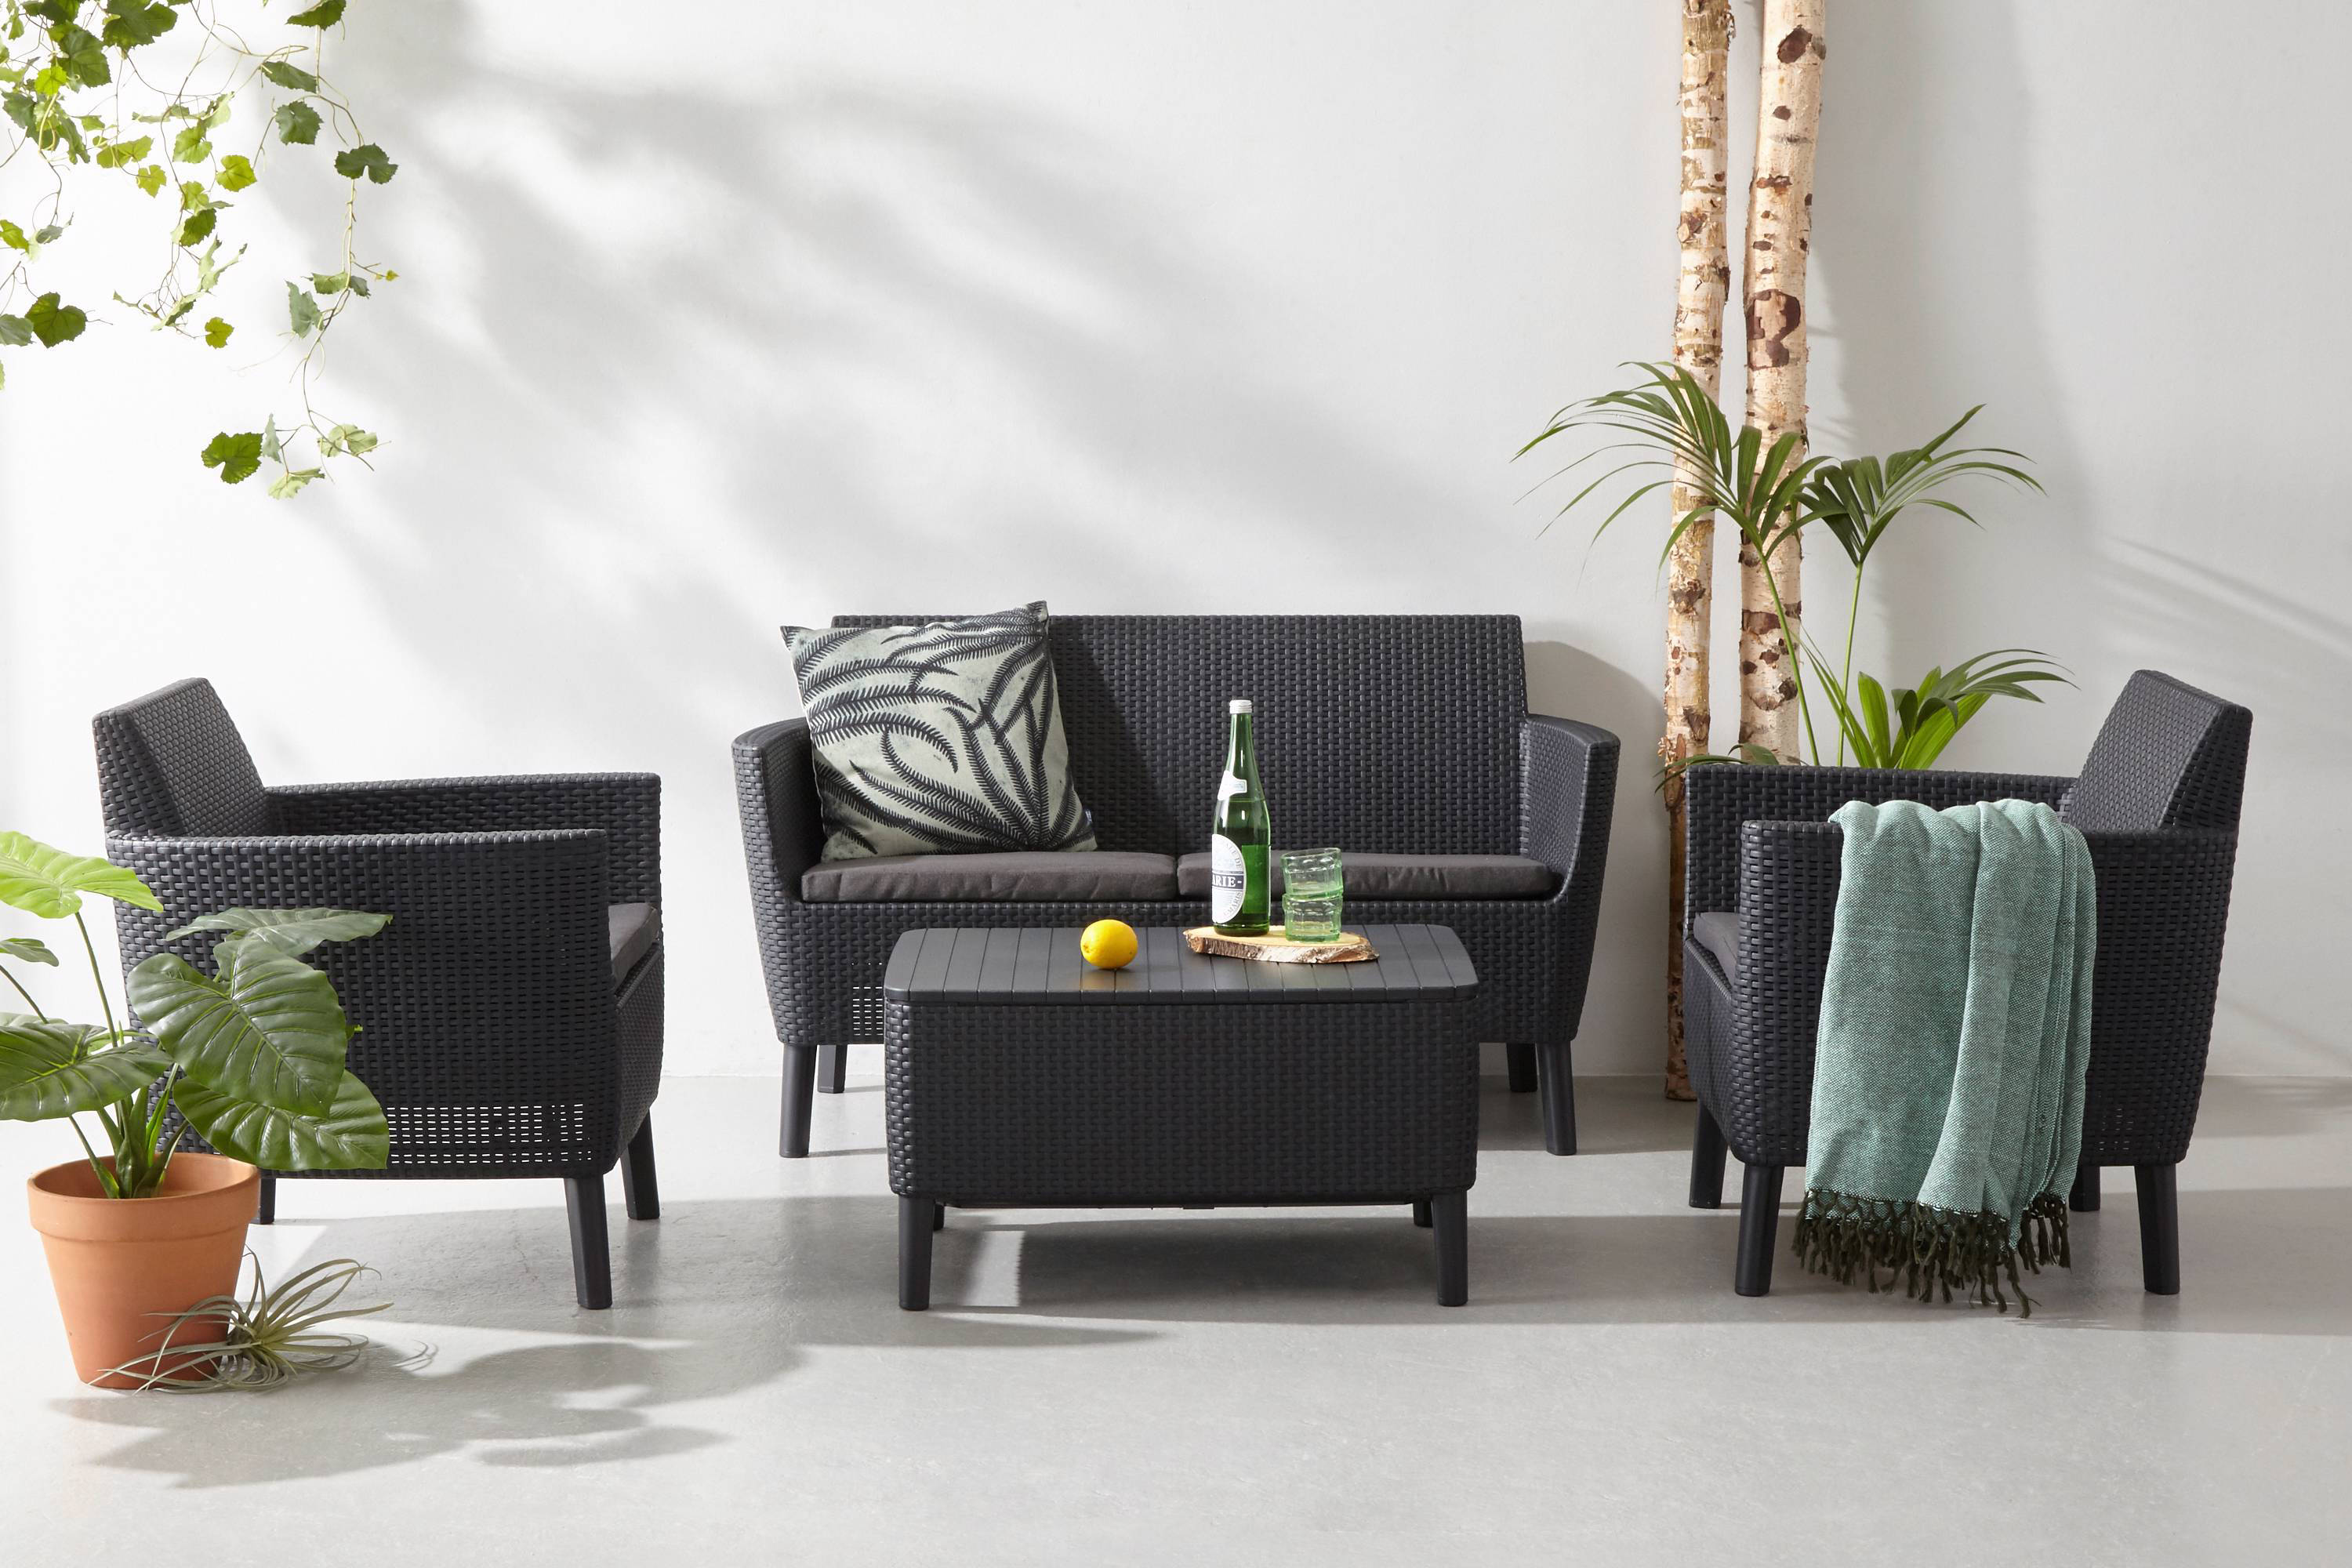 Loungeset Tuin Hout : Loungeset hout